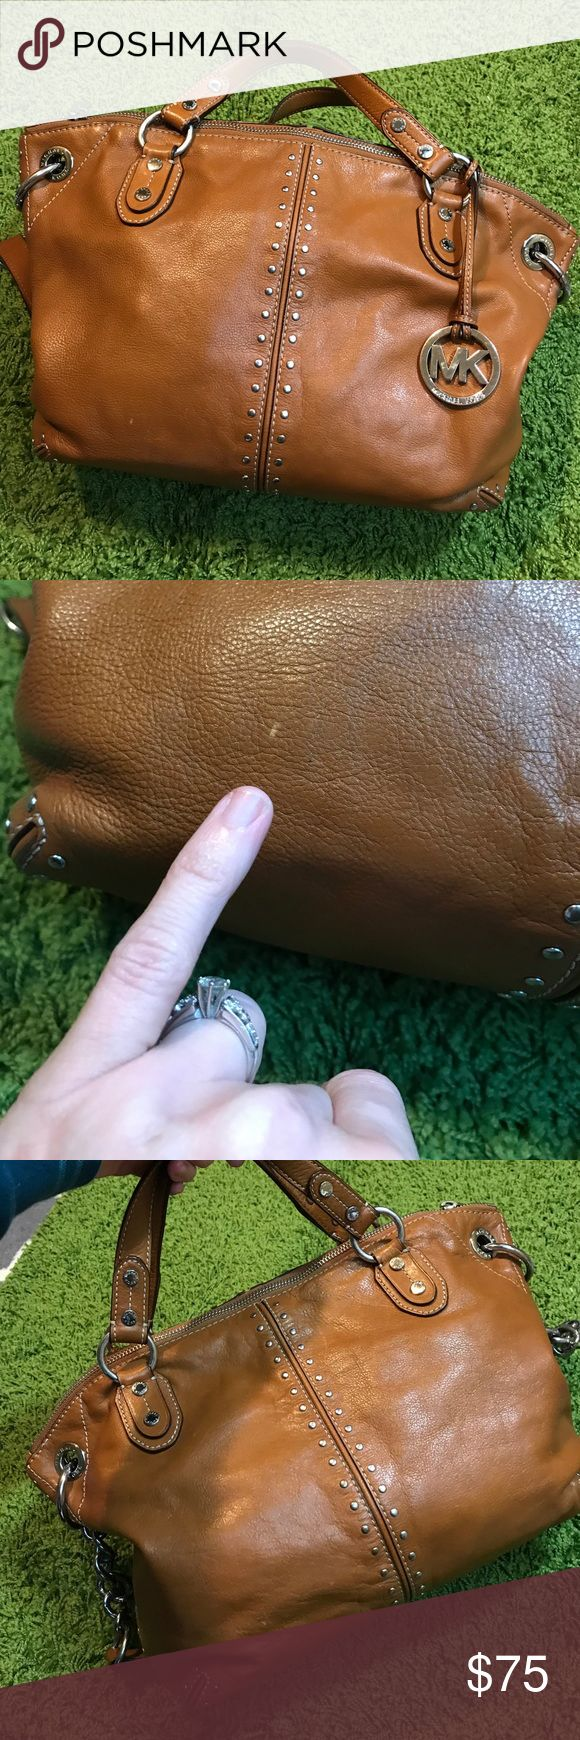 Michael Kors brown handbag Lovely saddle brown with silver hardware. Carried; exterior gets an 8 out of 10 for condition. Interior gets a 7 out of 10 due to cone pen marks to very bottom & some dingy spots. This is a beautiful quality bag with lots of life to give. Measures 15x11 so Medium-to-Large in size. Comes with its dust bag. Bundling is fun! Check out my other items. No trades or holds. No price talk in comments. MICHAEL Michael Kors Bags Satchels